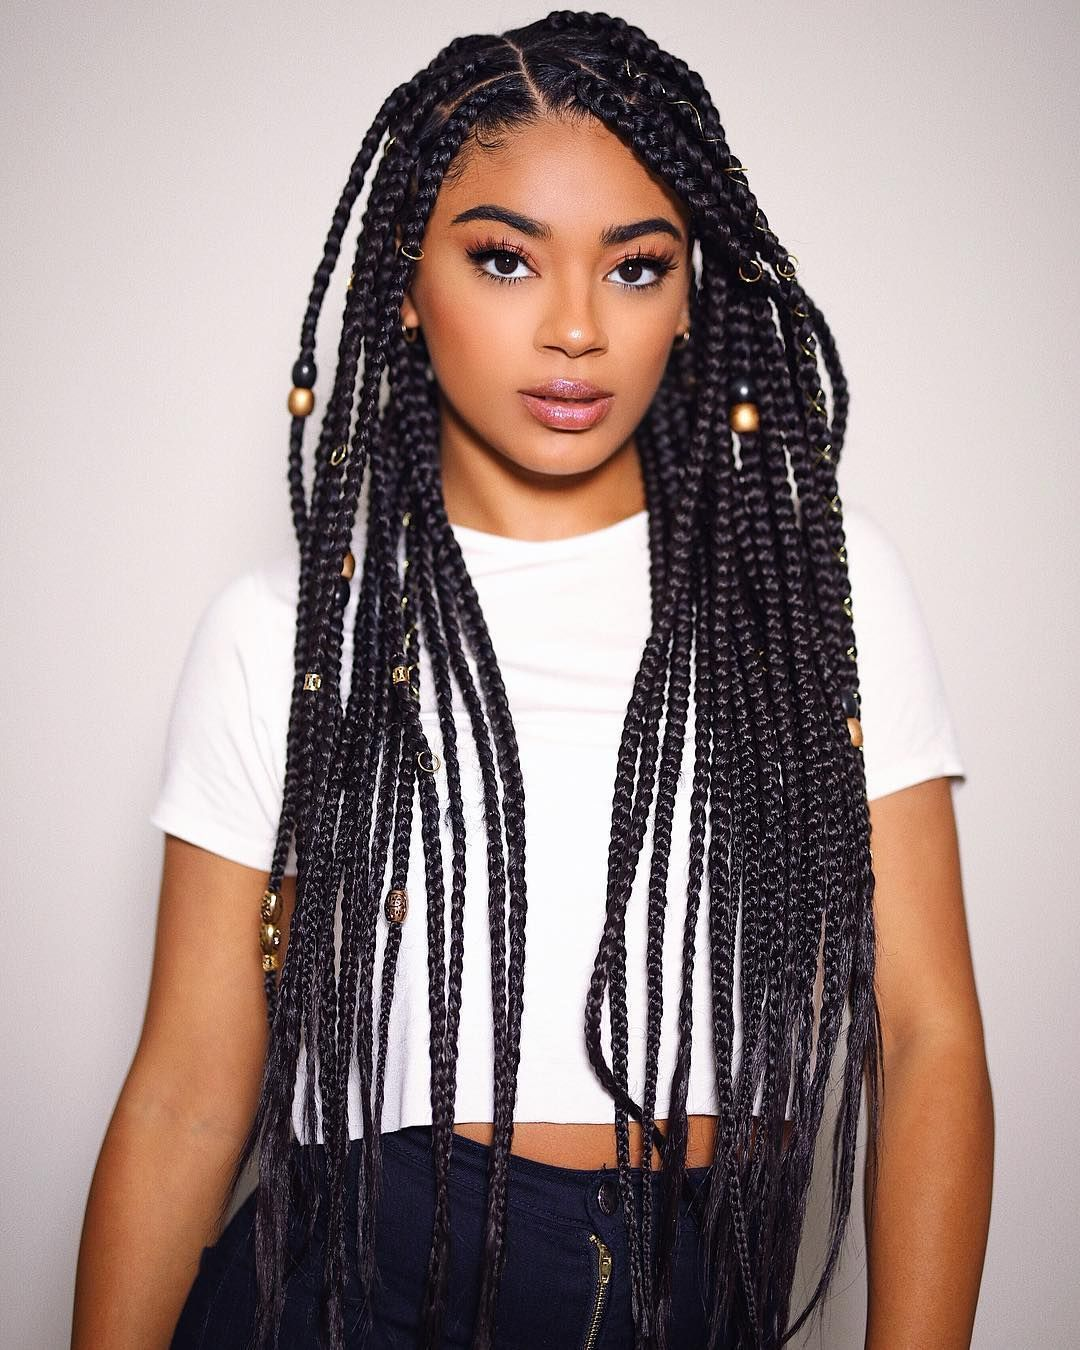 Pin on Best African Hairstyles